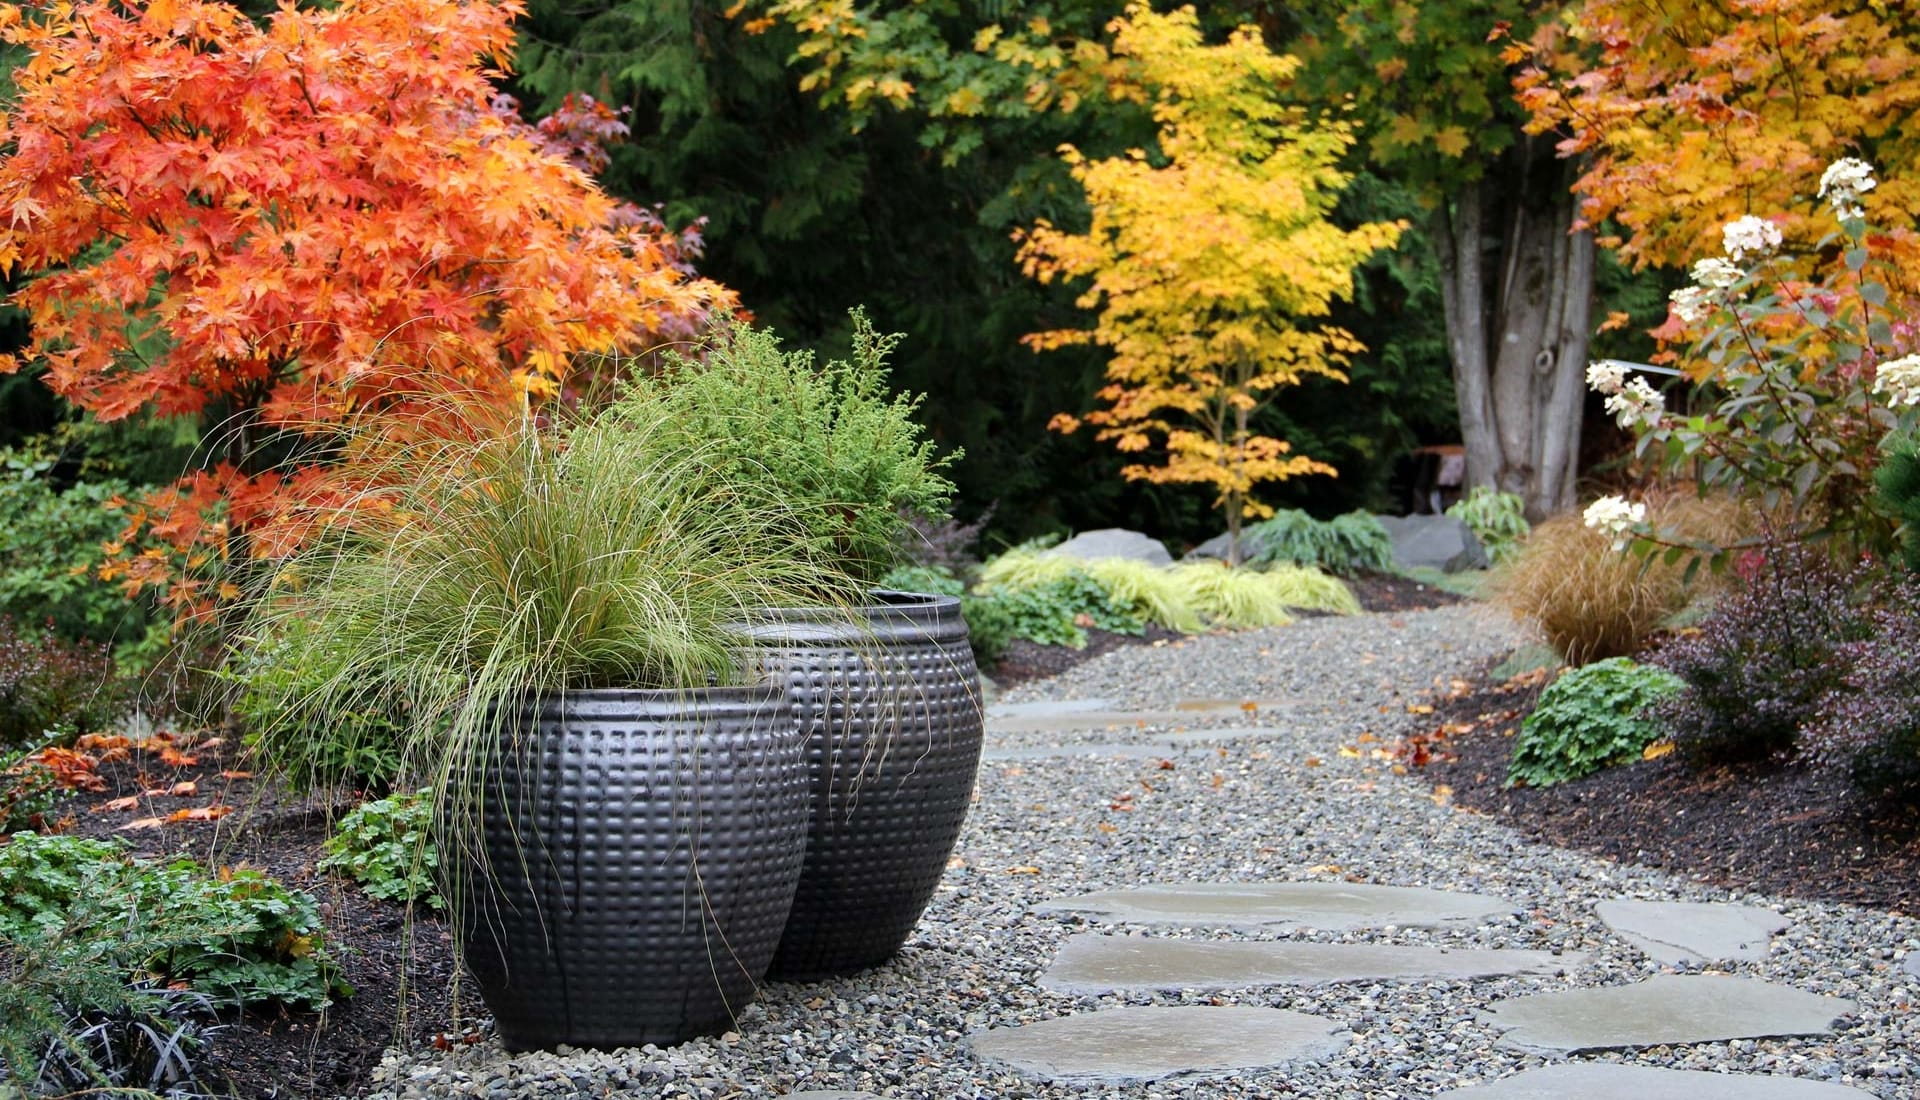 Best backyard landscaping ideas #16